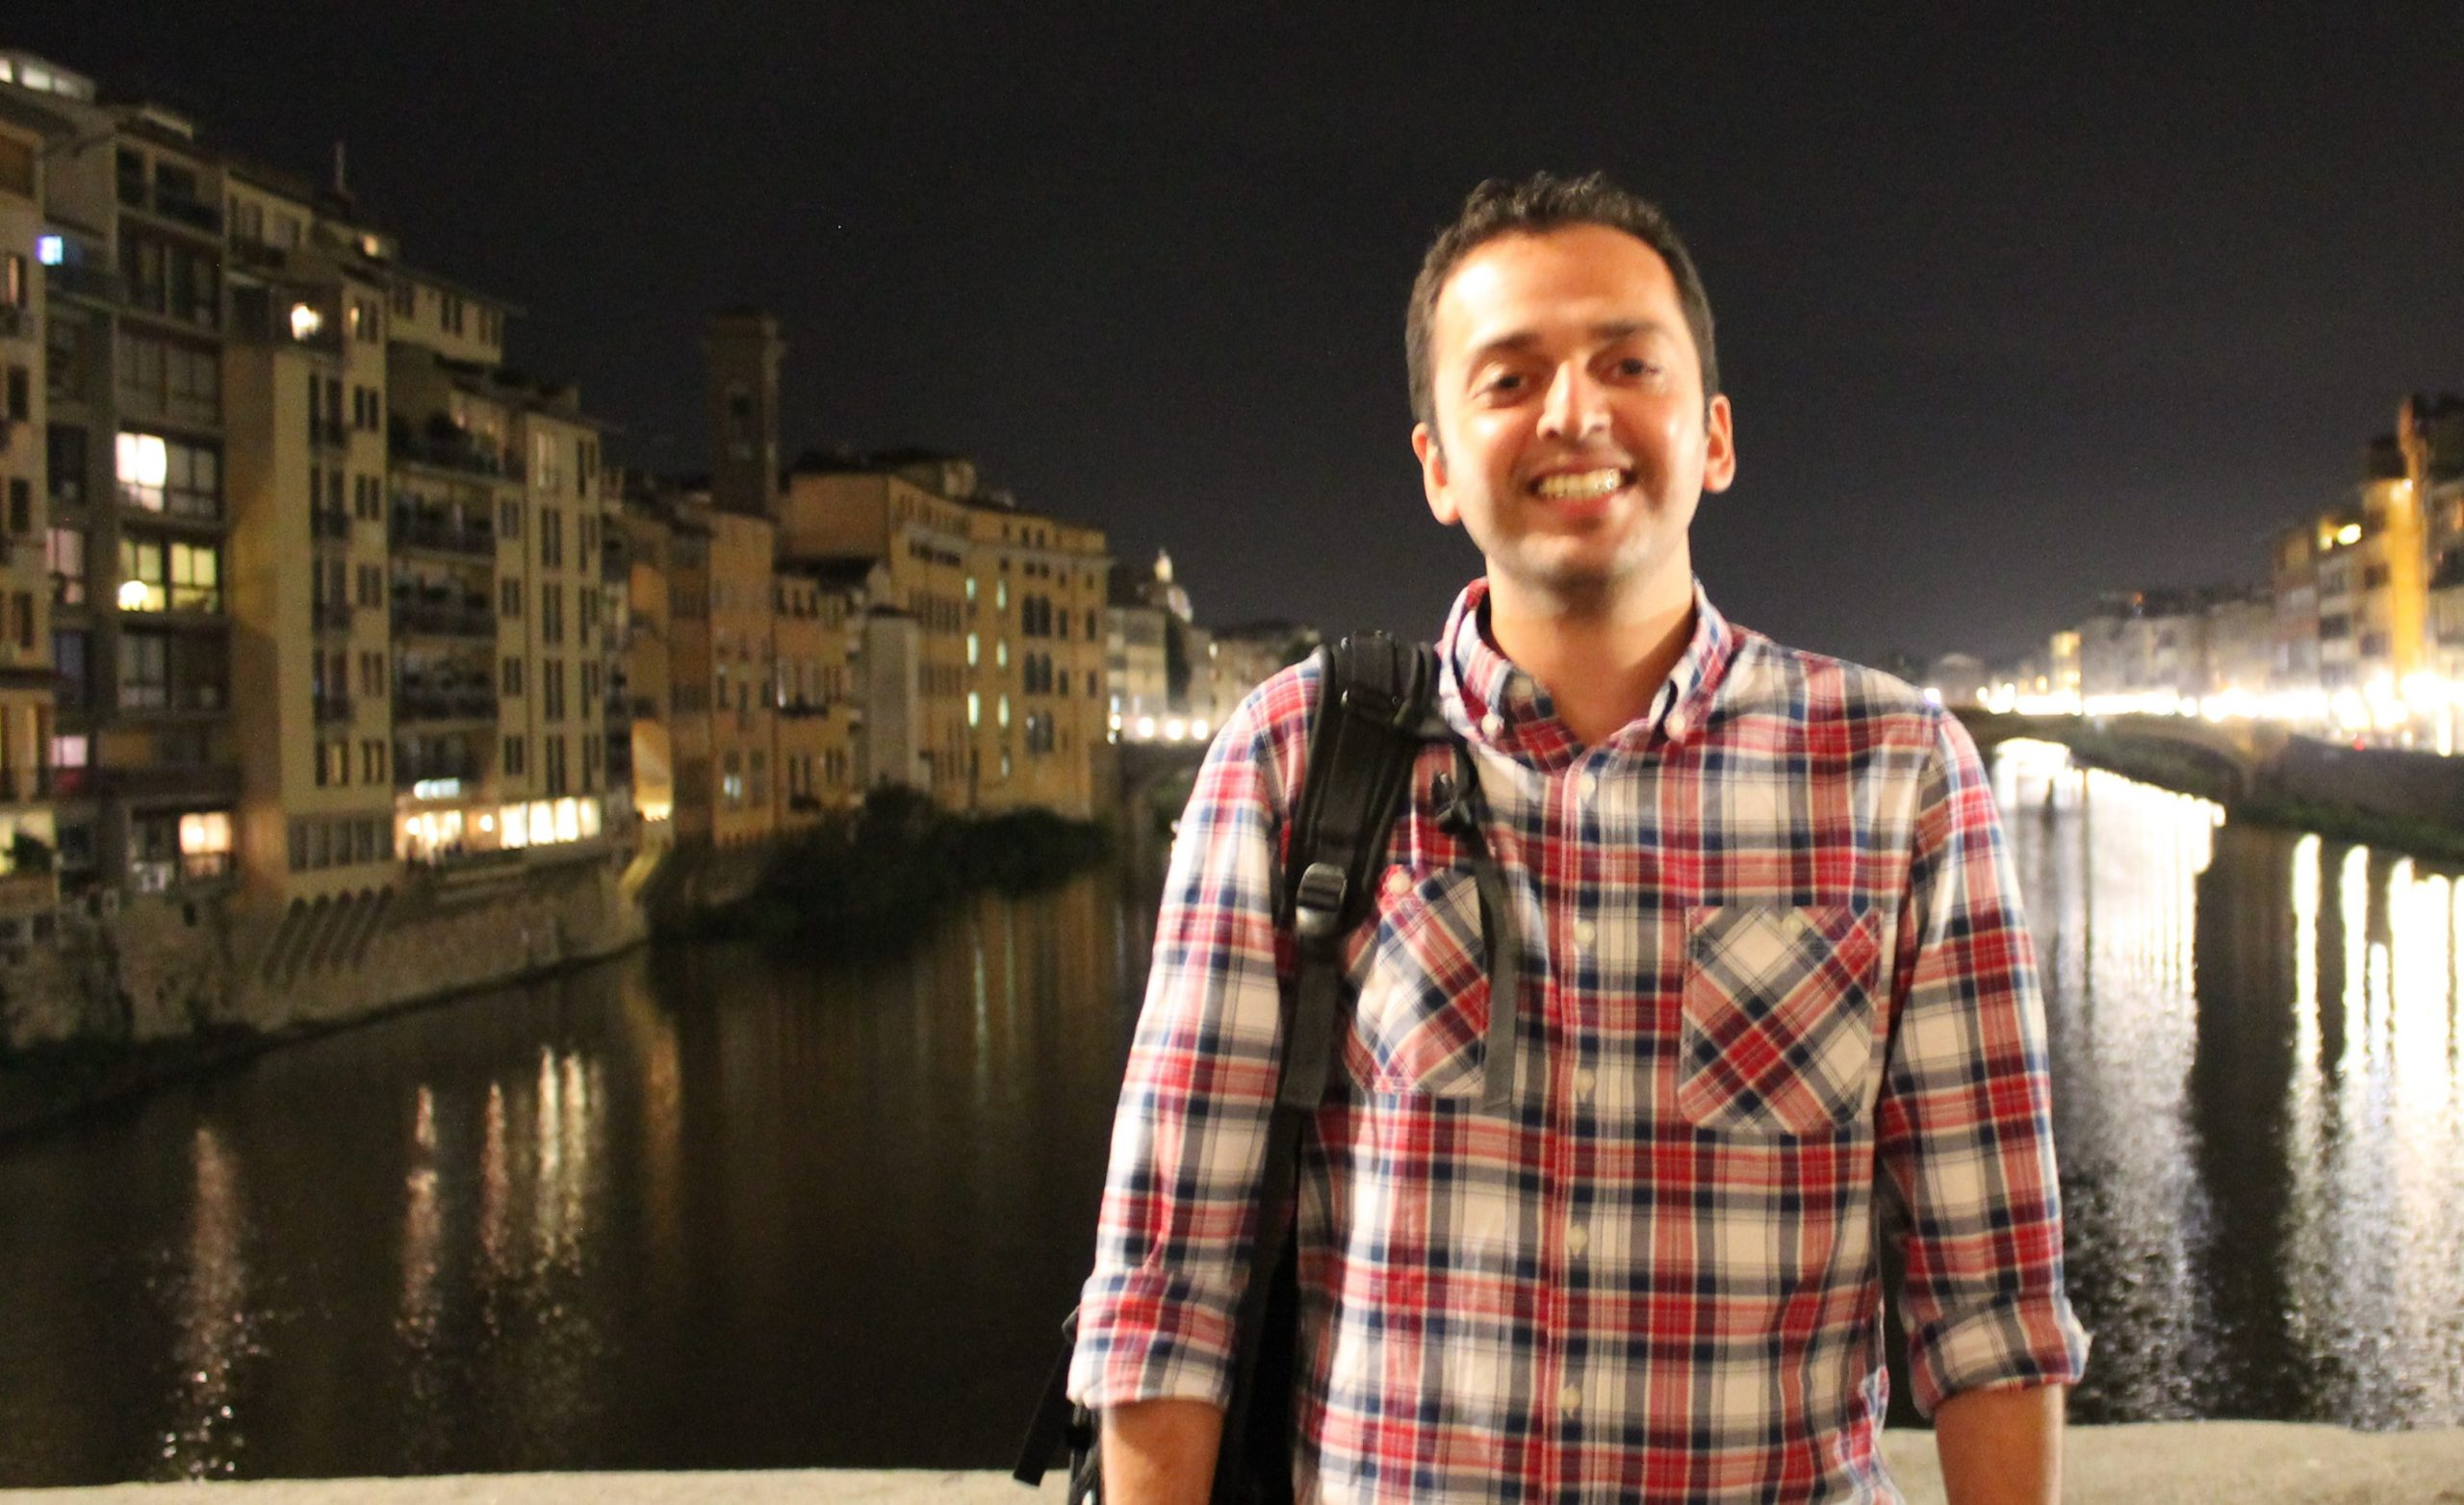 Piazza Republika and River Arno in Florence